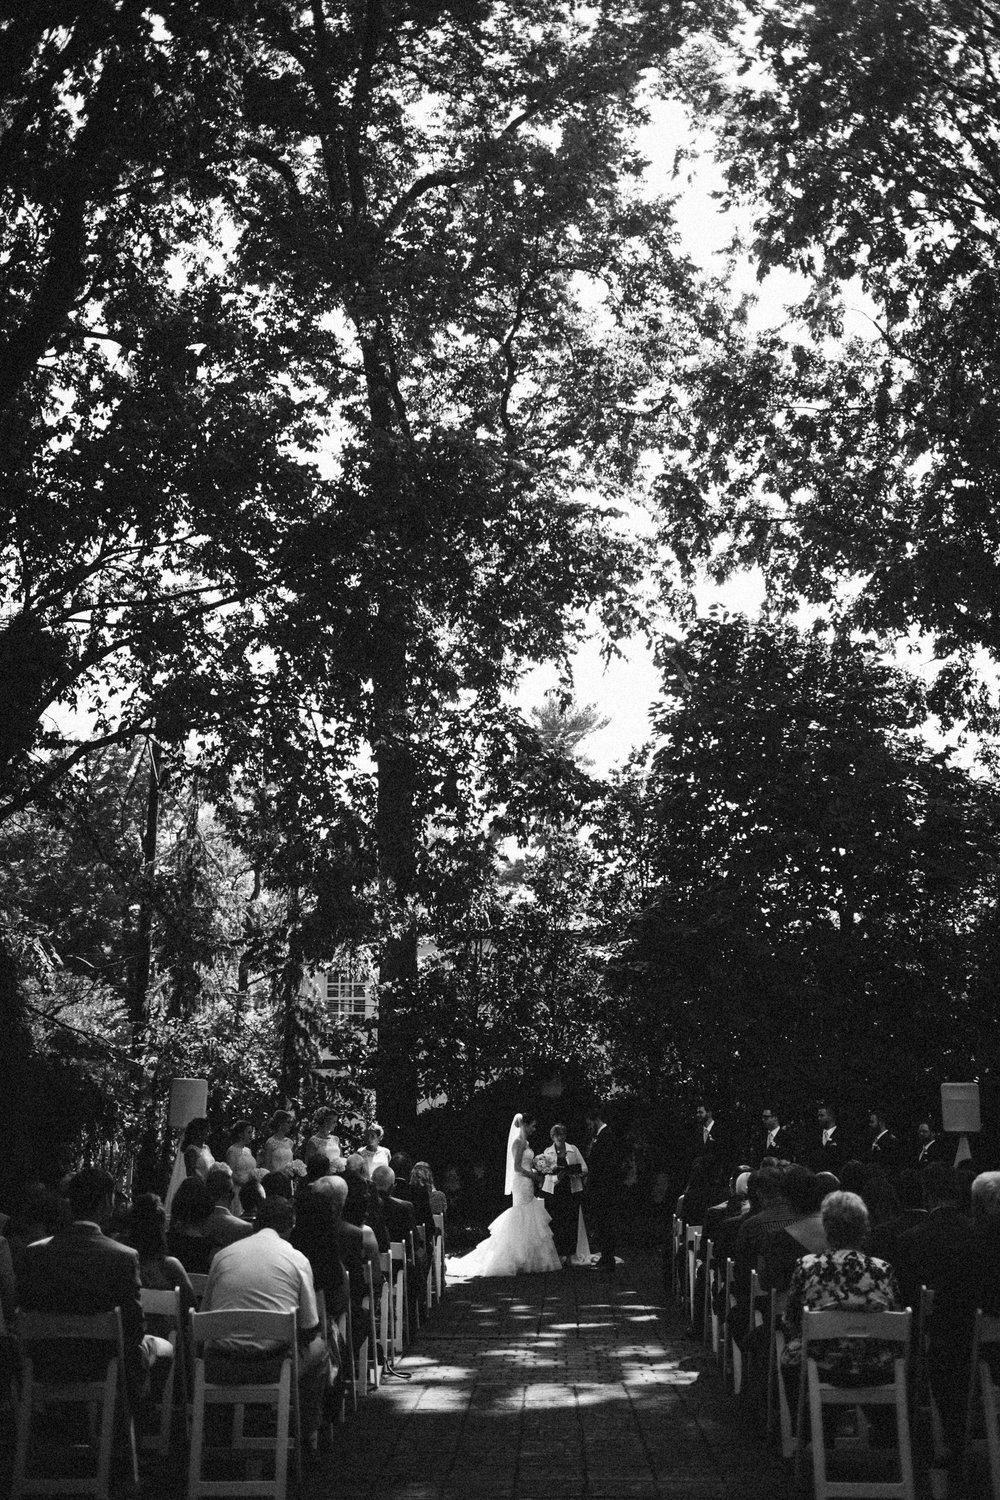 Louisville-Kentucky-Wedding-Elopement-Photographer-Sarah-Katherine-Davis-Photography-Whitehall-Classic-Timeless-Garden-Wedding-341.jpg